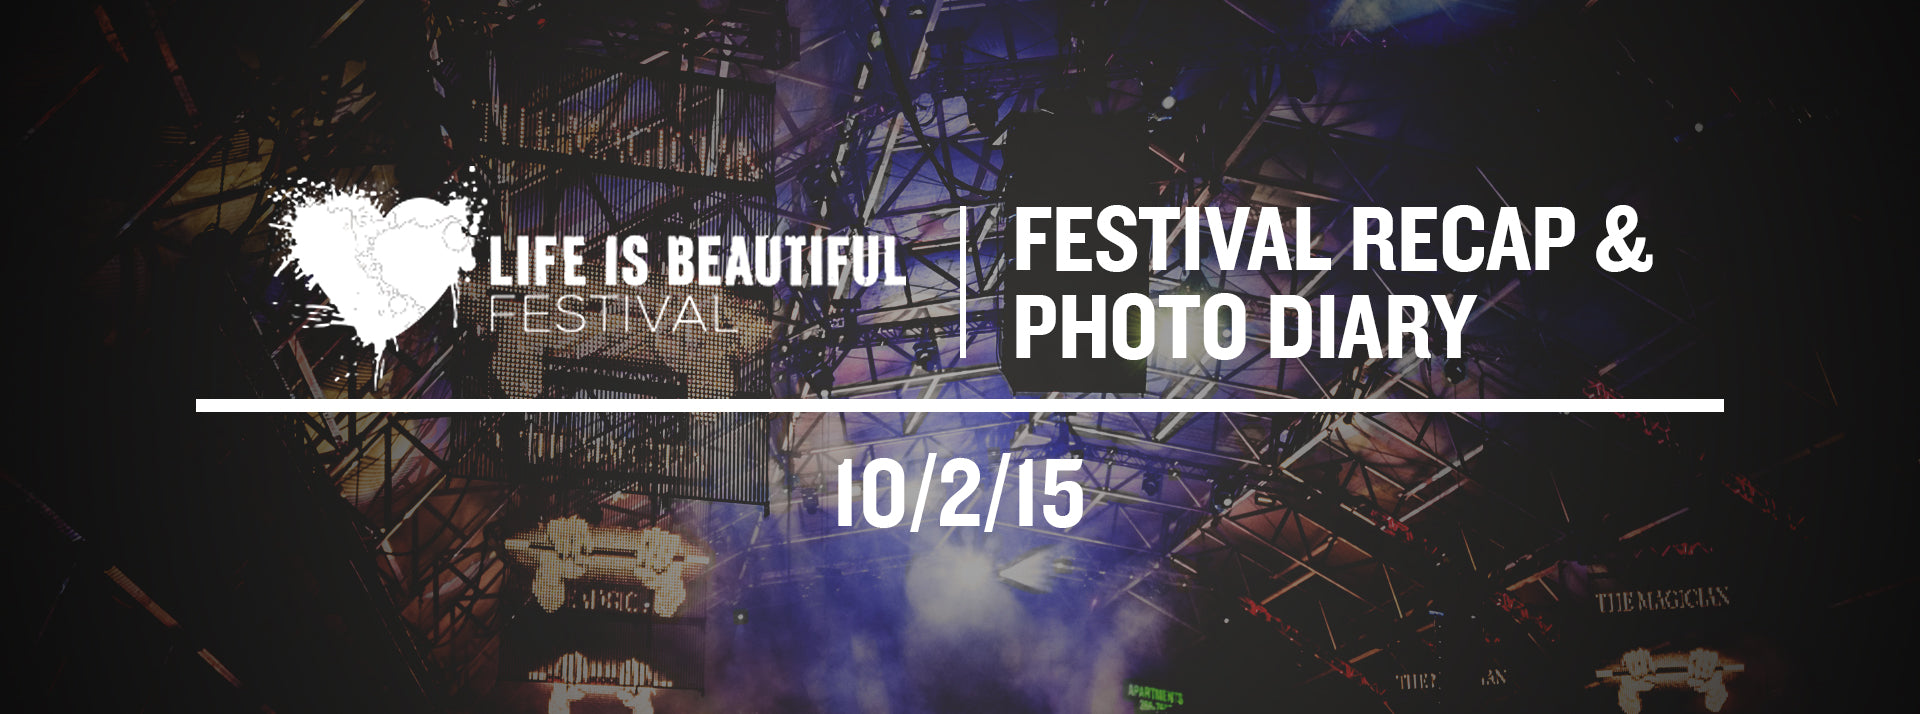 life is beautiful festival recap and photo diary by lstn sound co